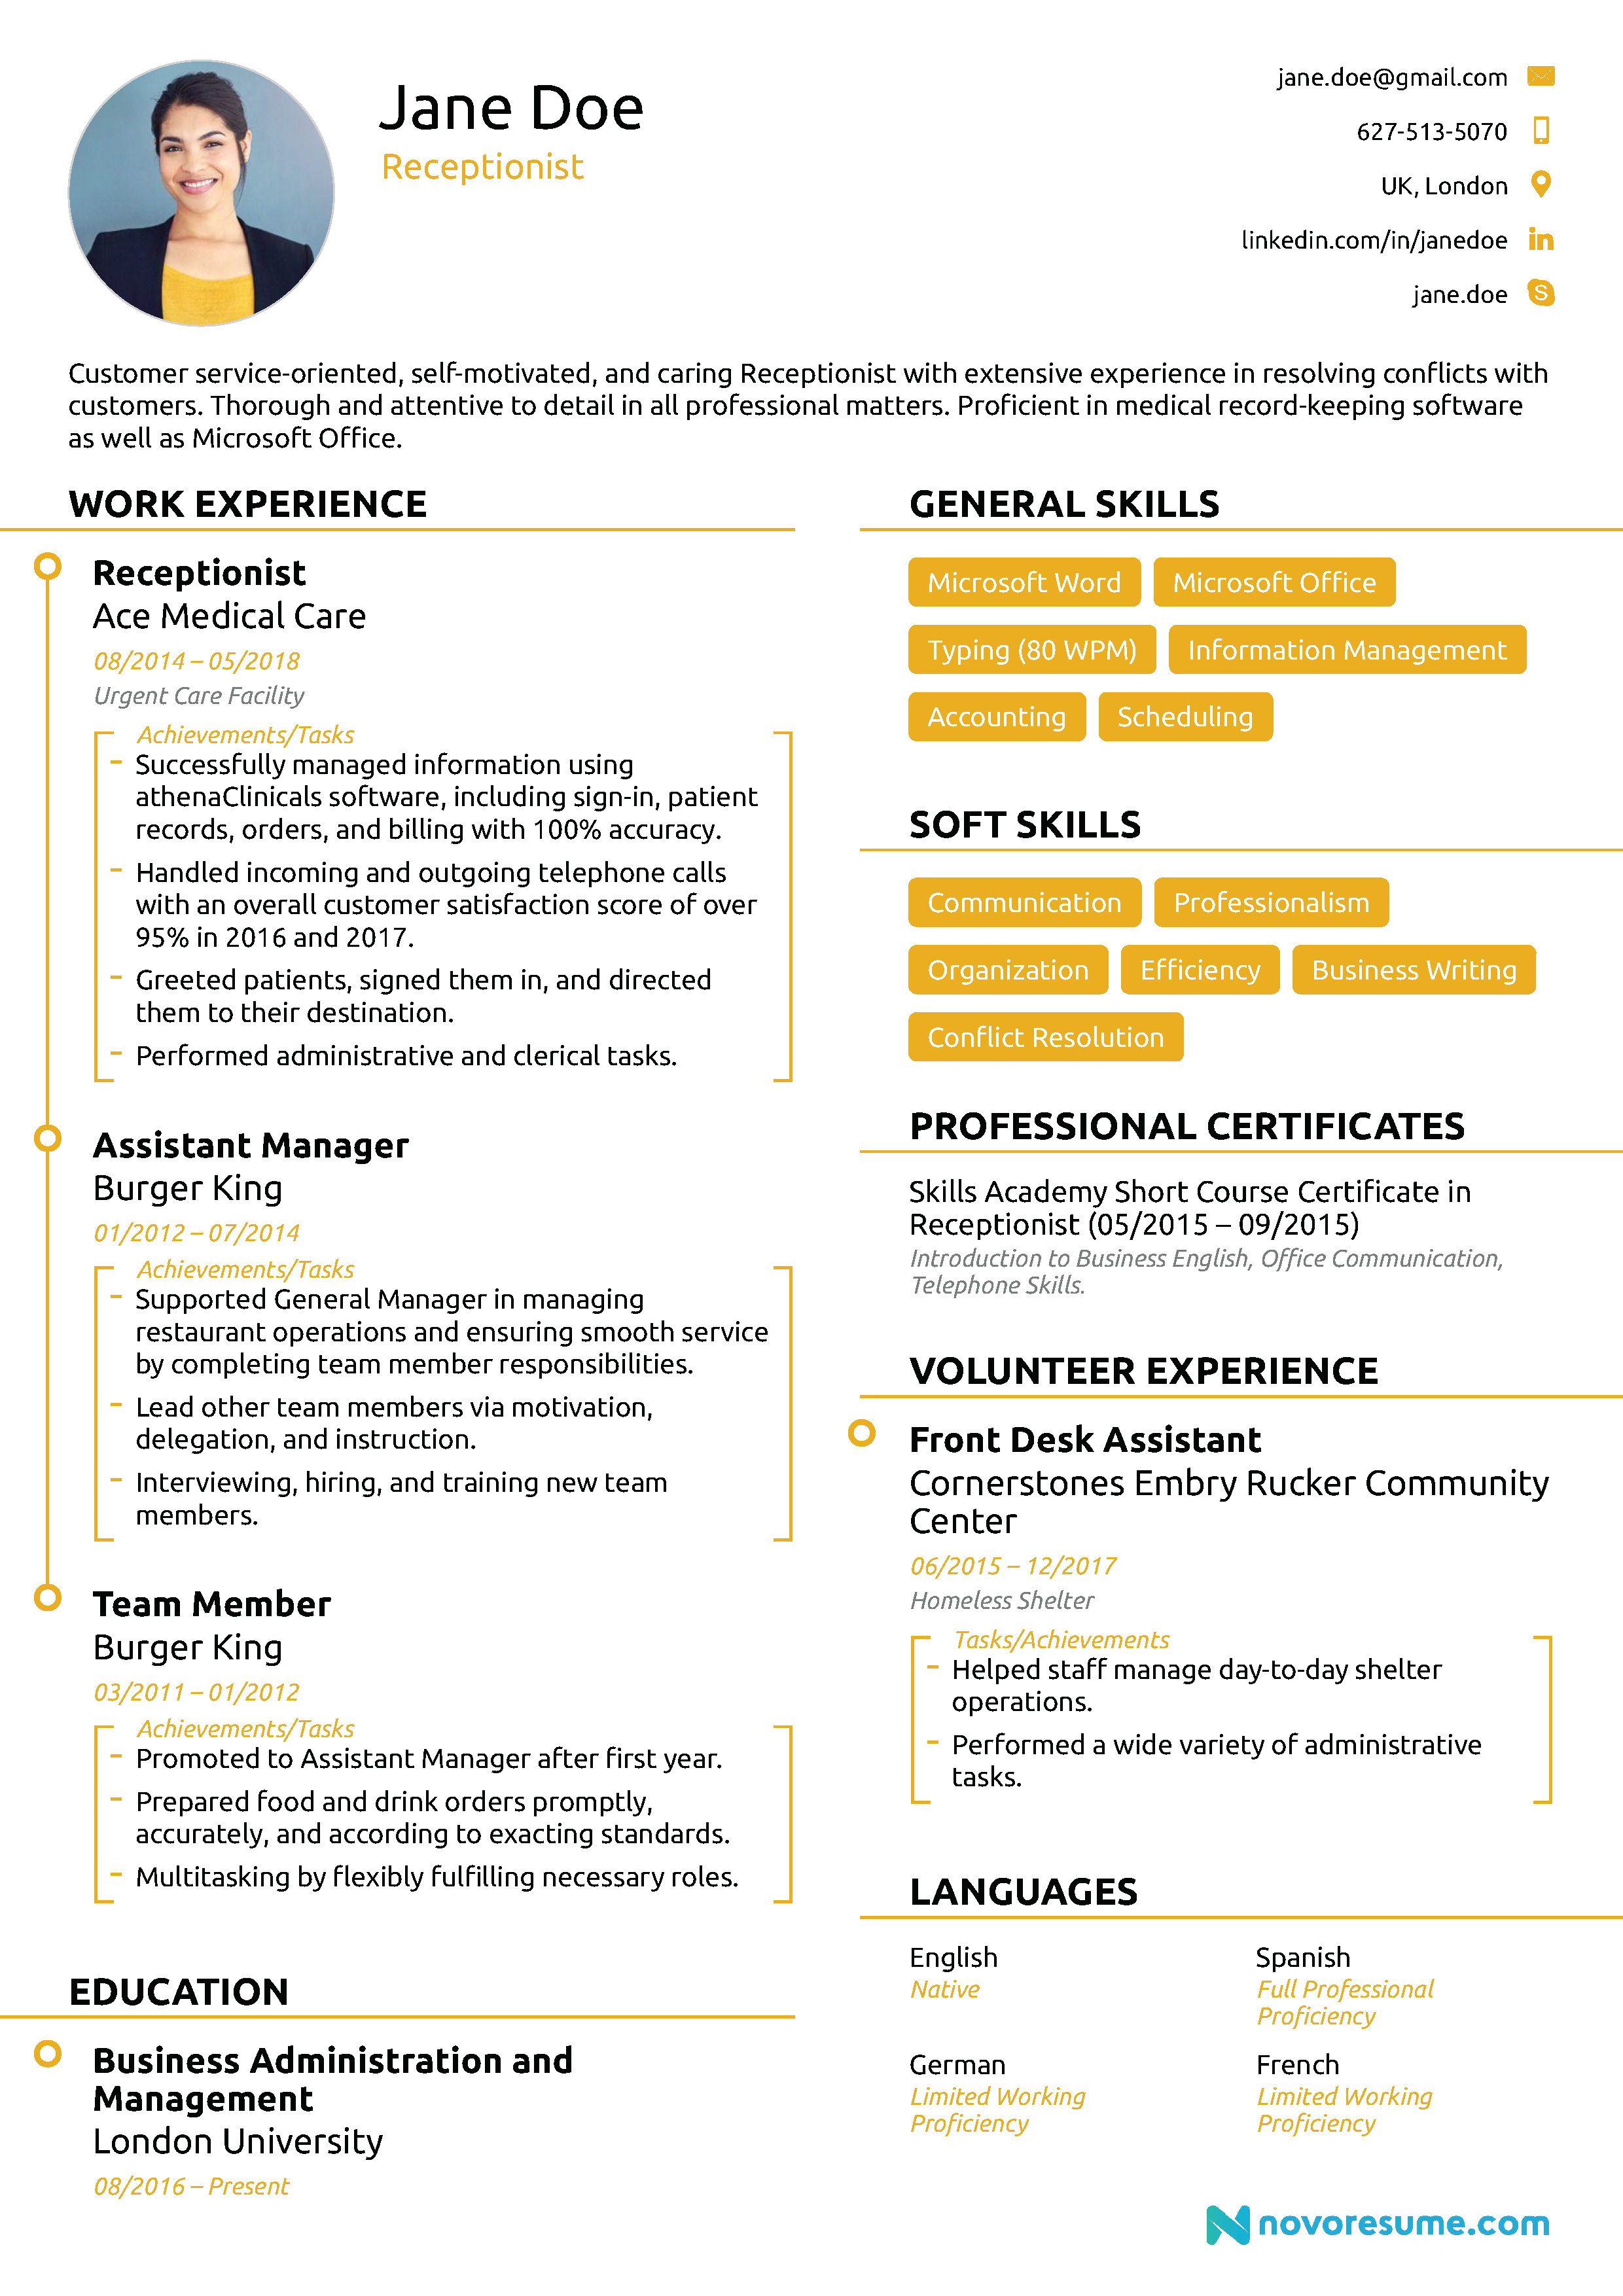 Receptionist Resume [2019] - Guide and Examples